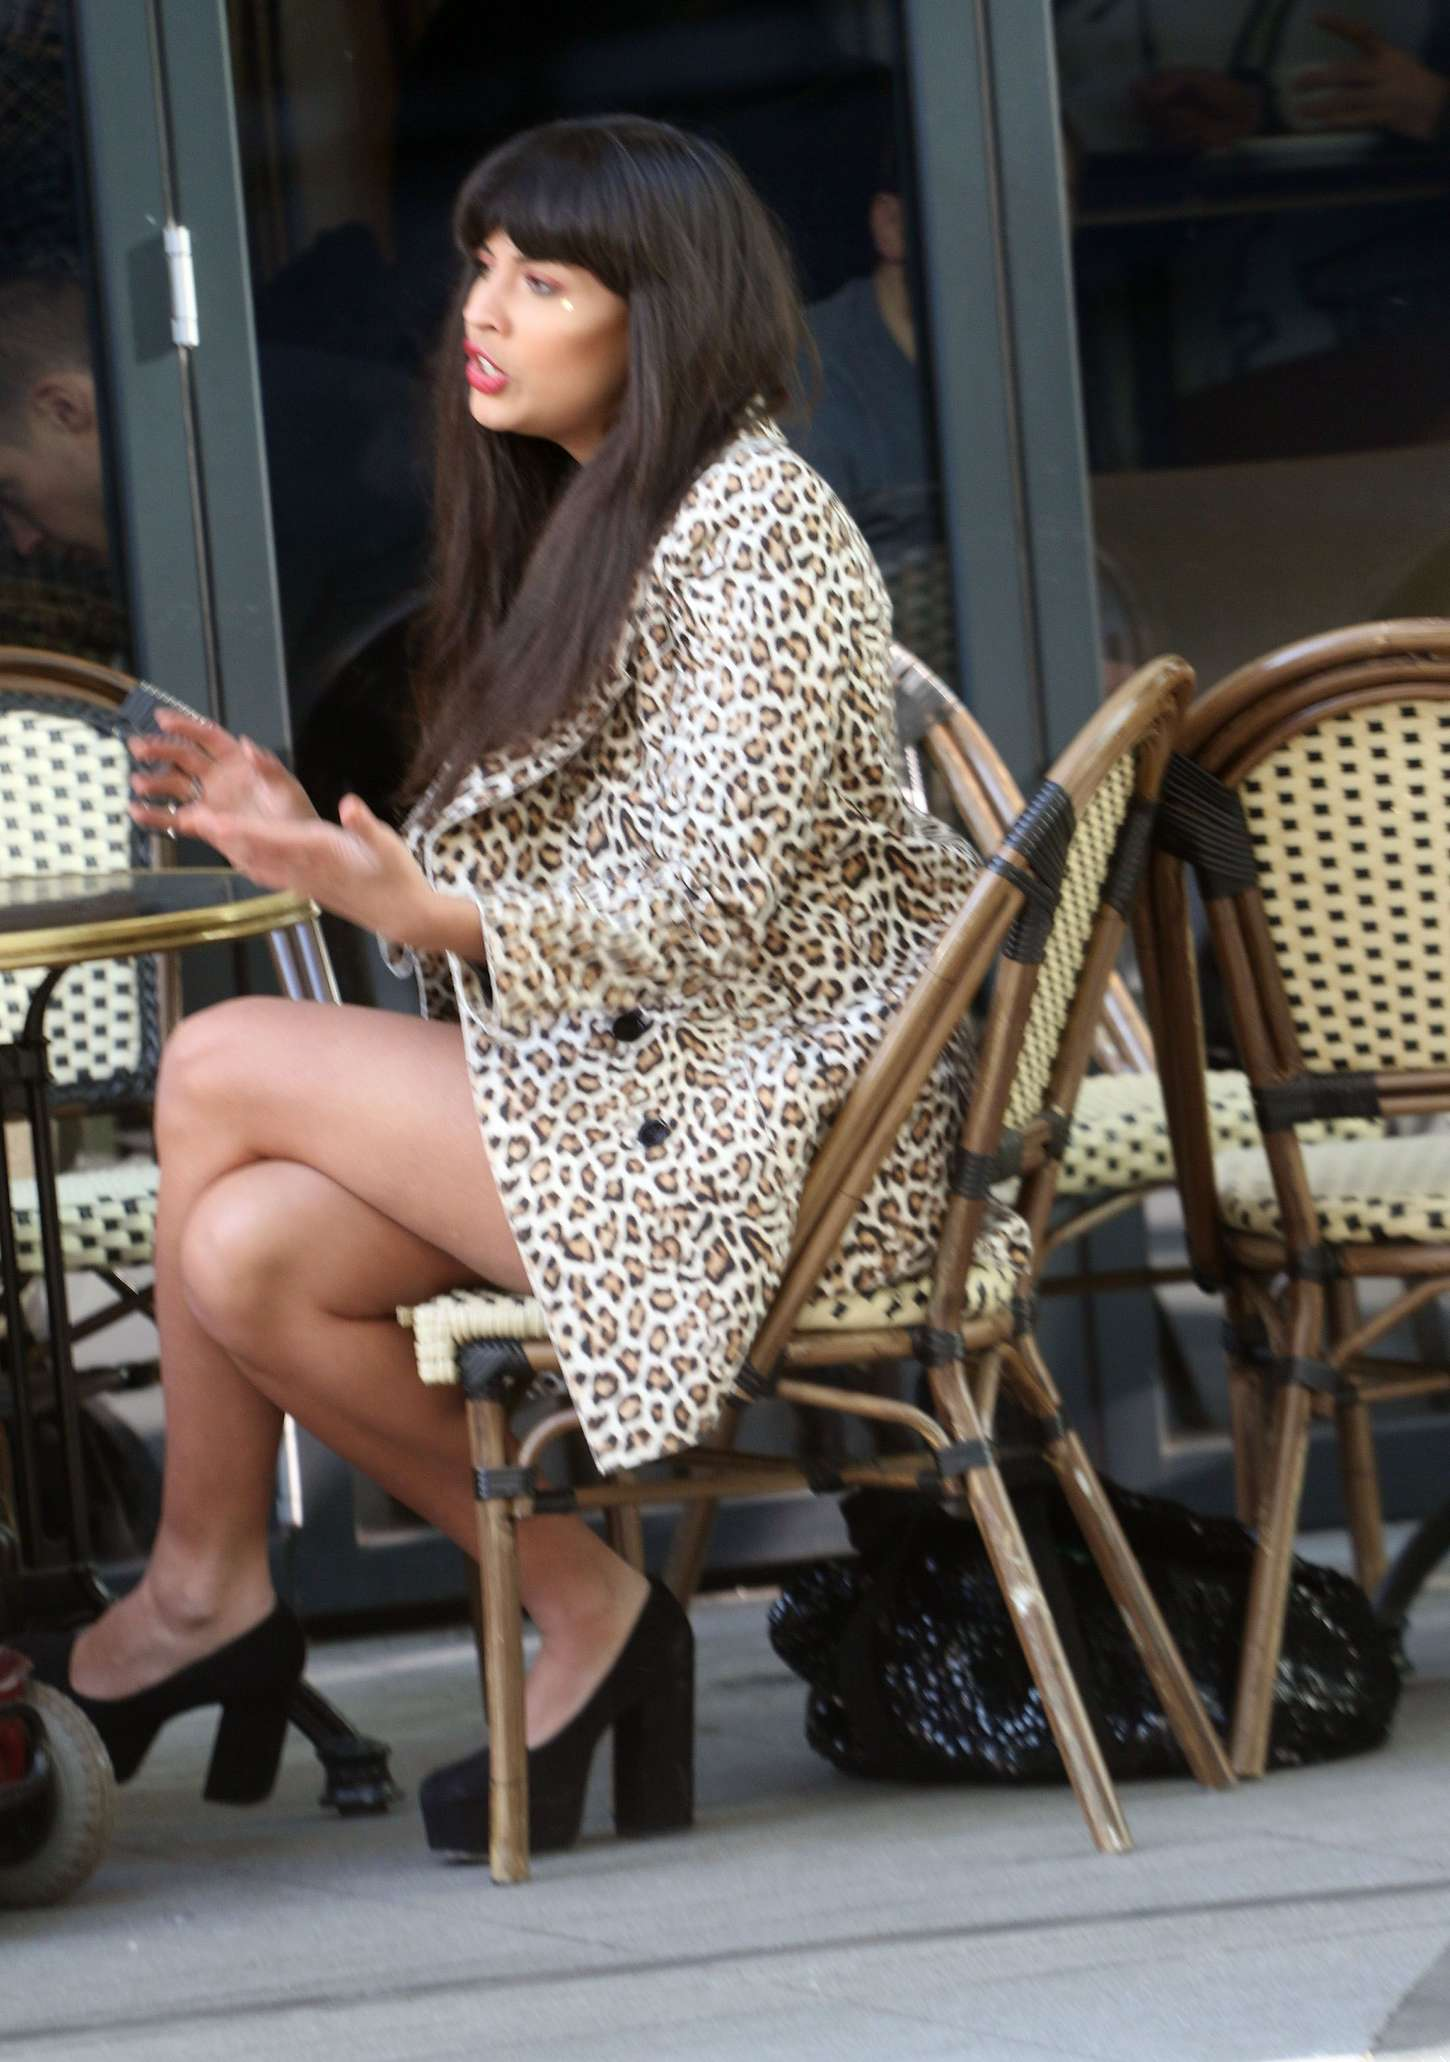 Jameela Jamil In Mini Dress 20 Gotceleb